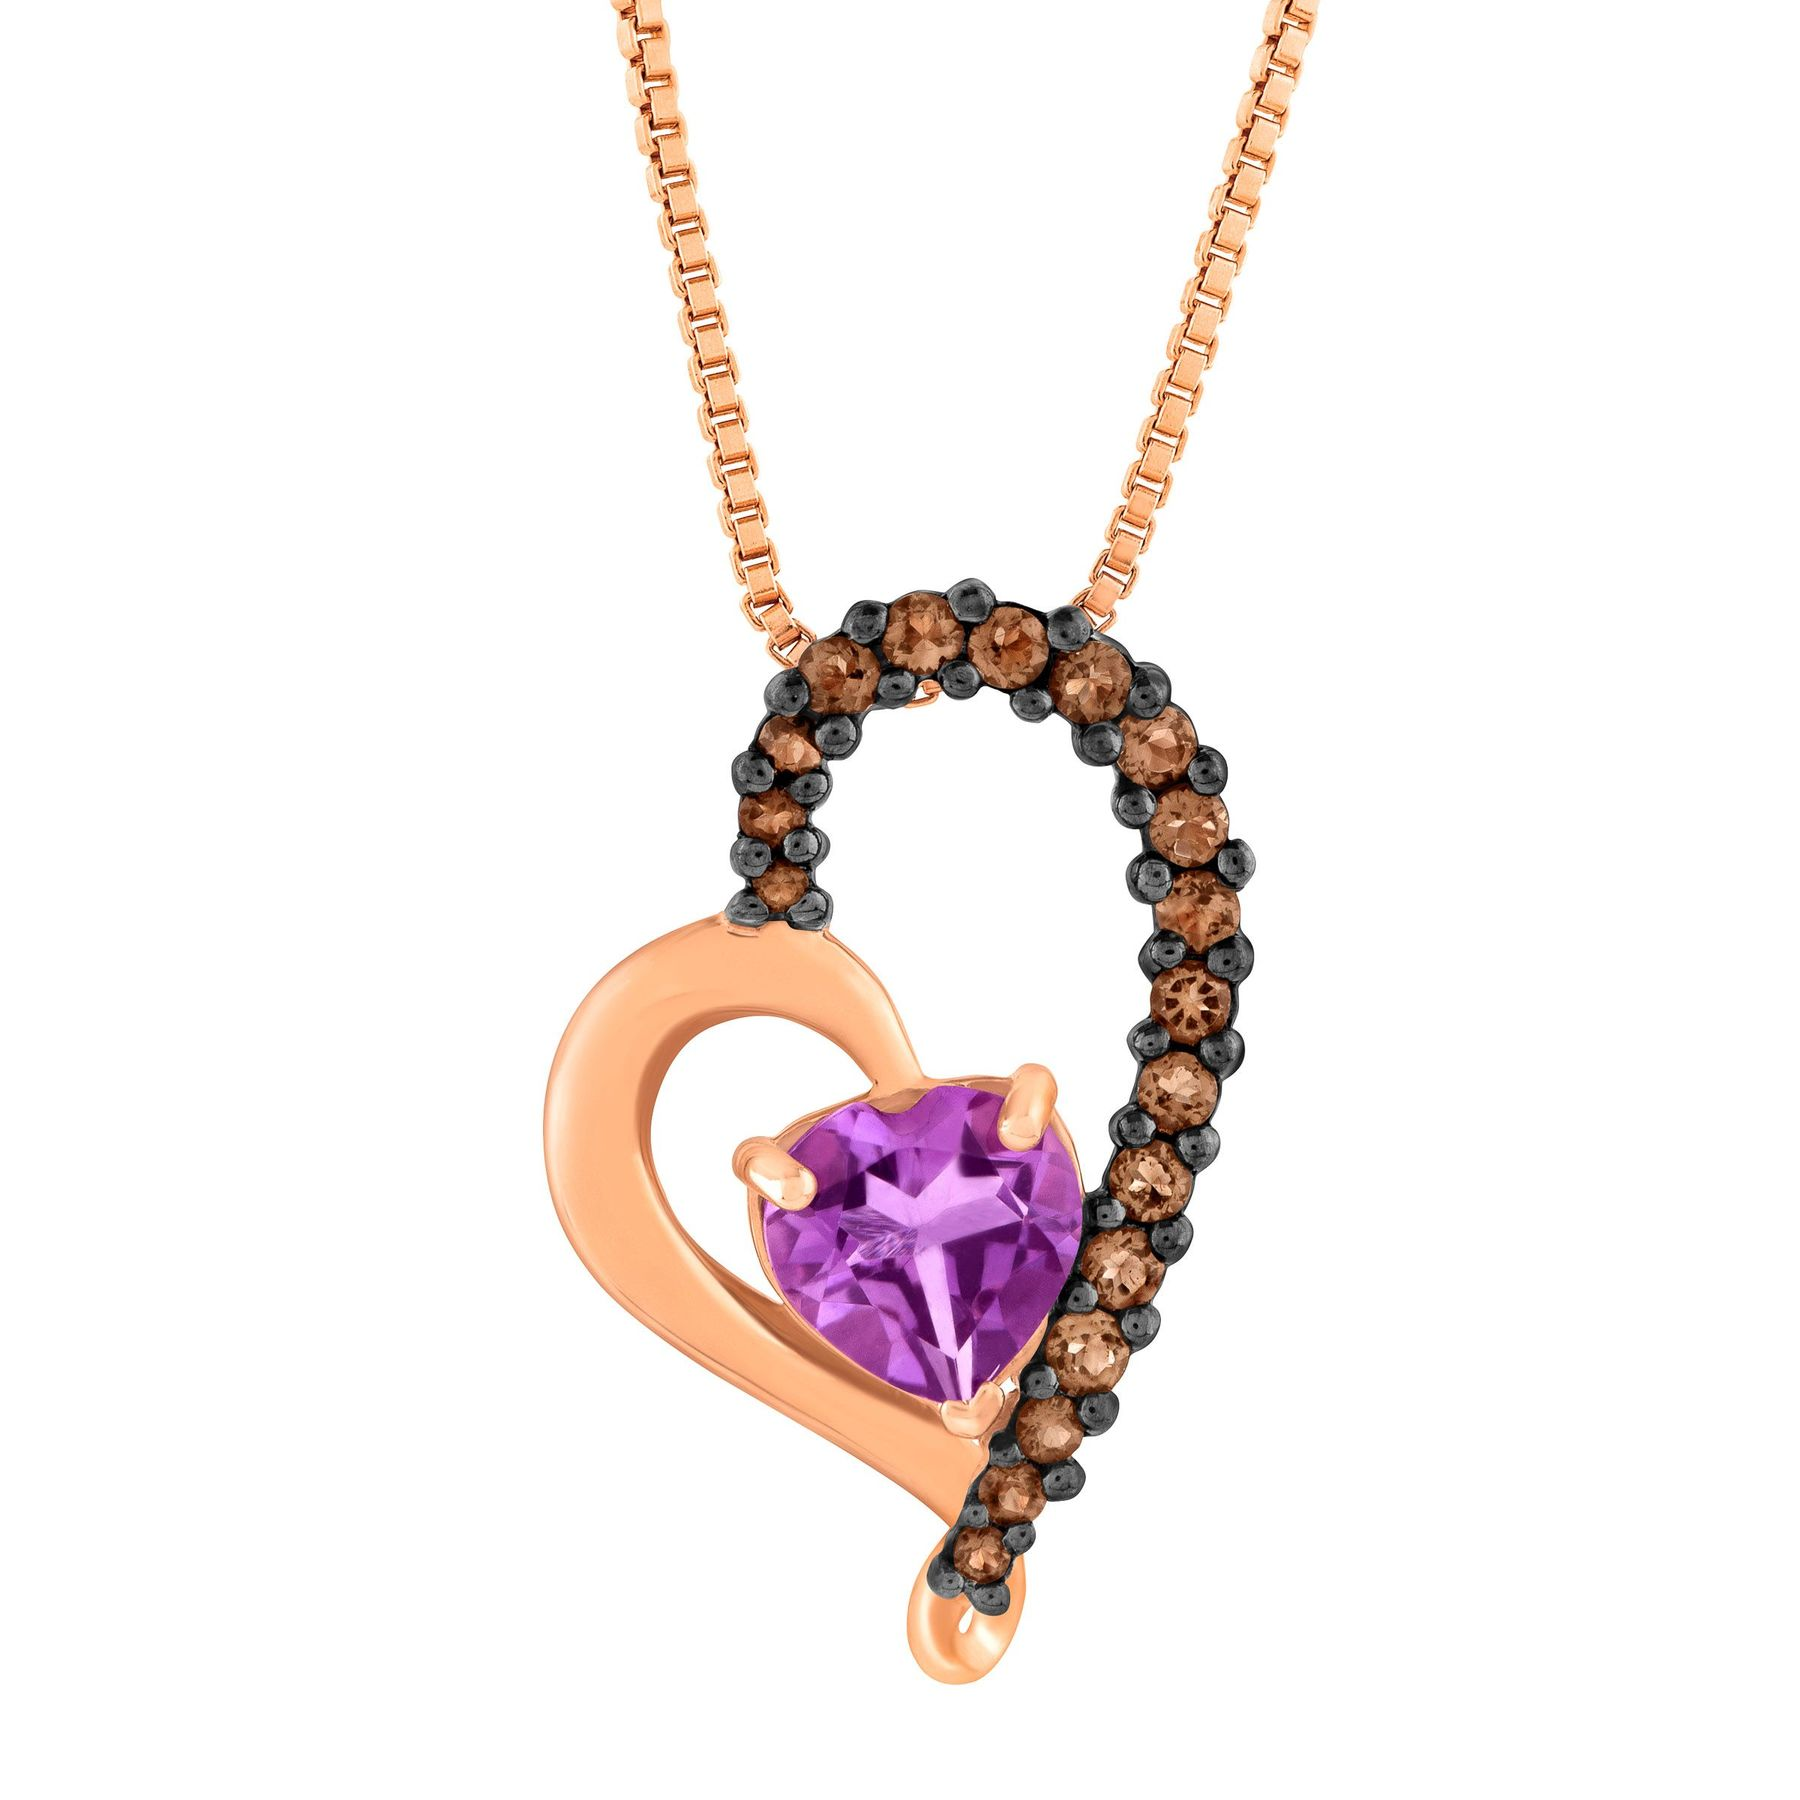 Finecraft 7/8 ct Amethyst & Smokey Quartz Heart Pendant